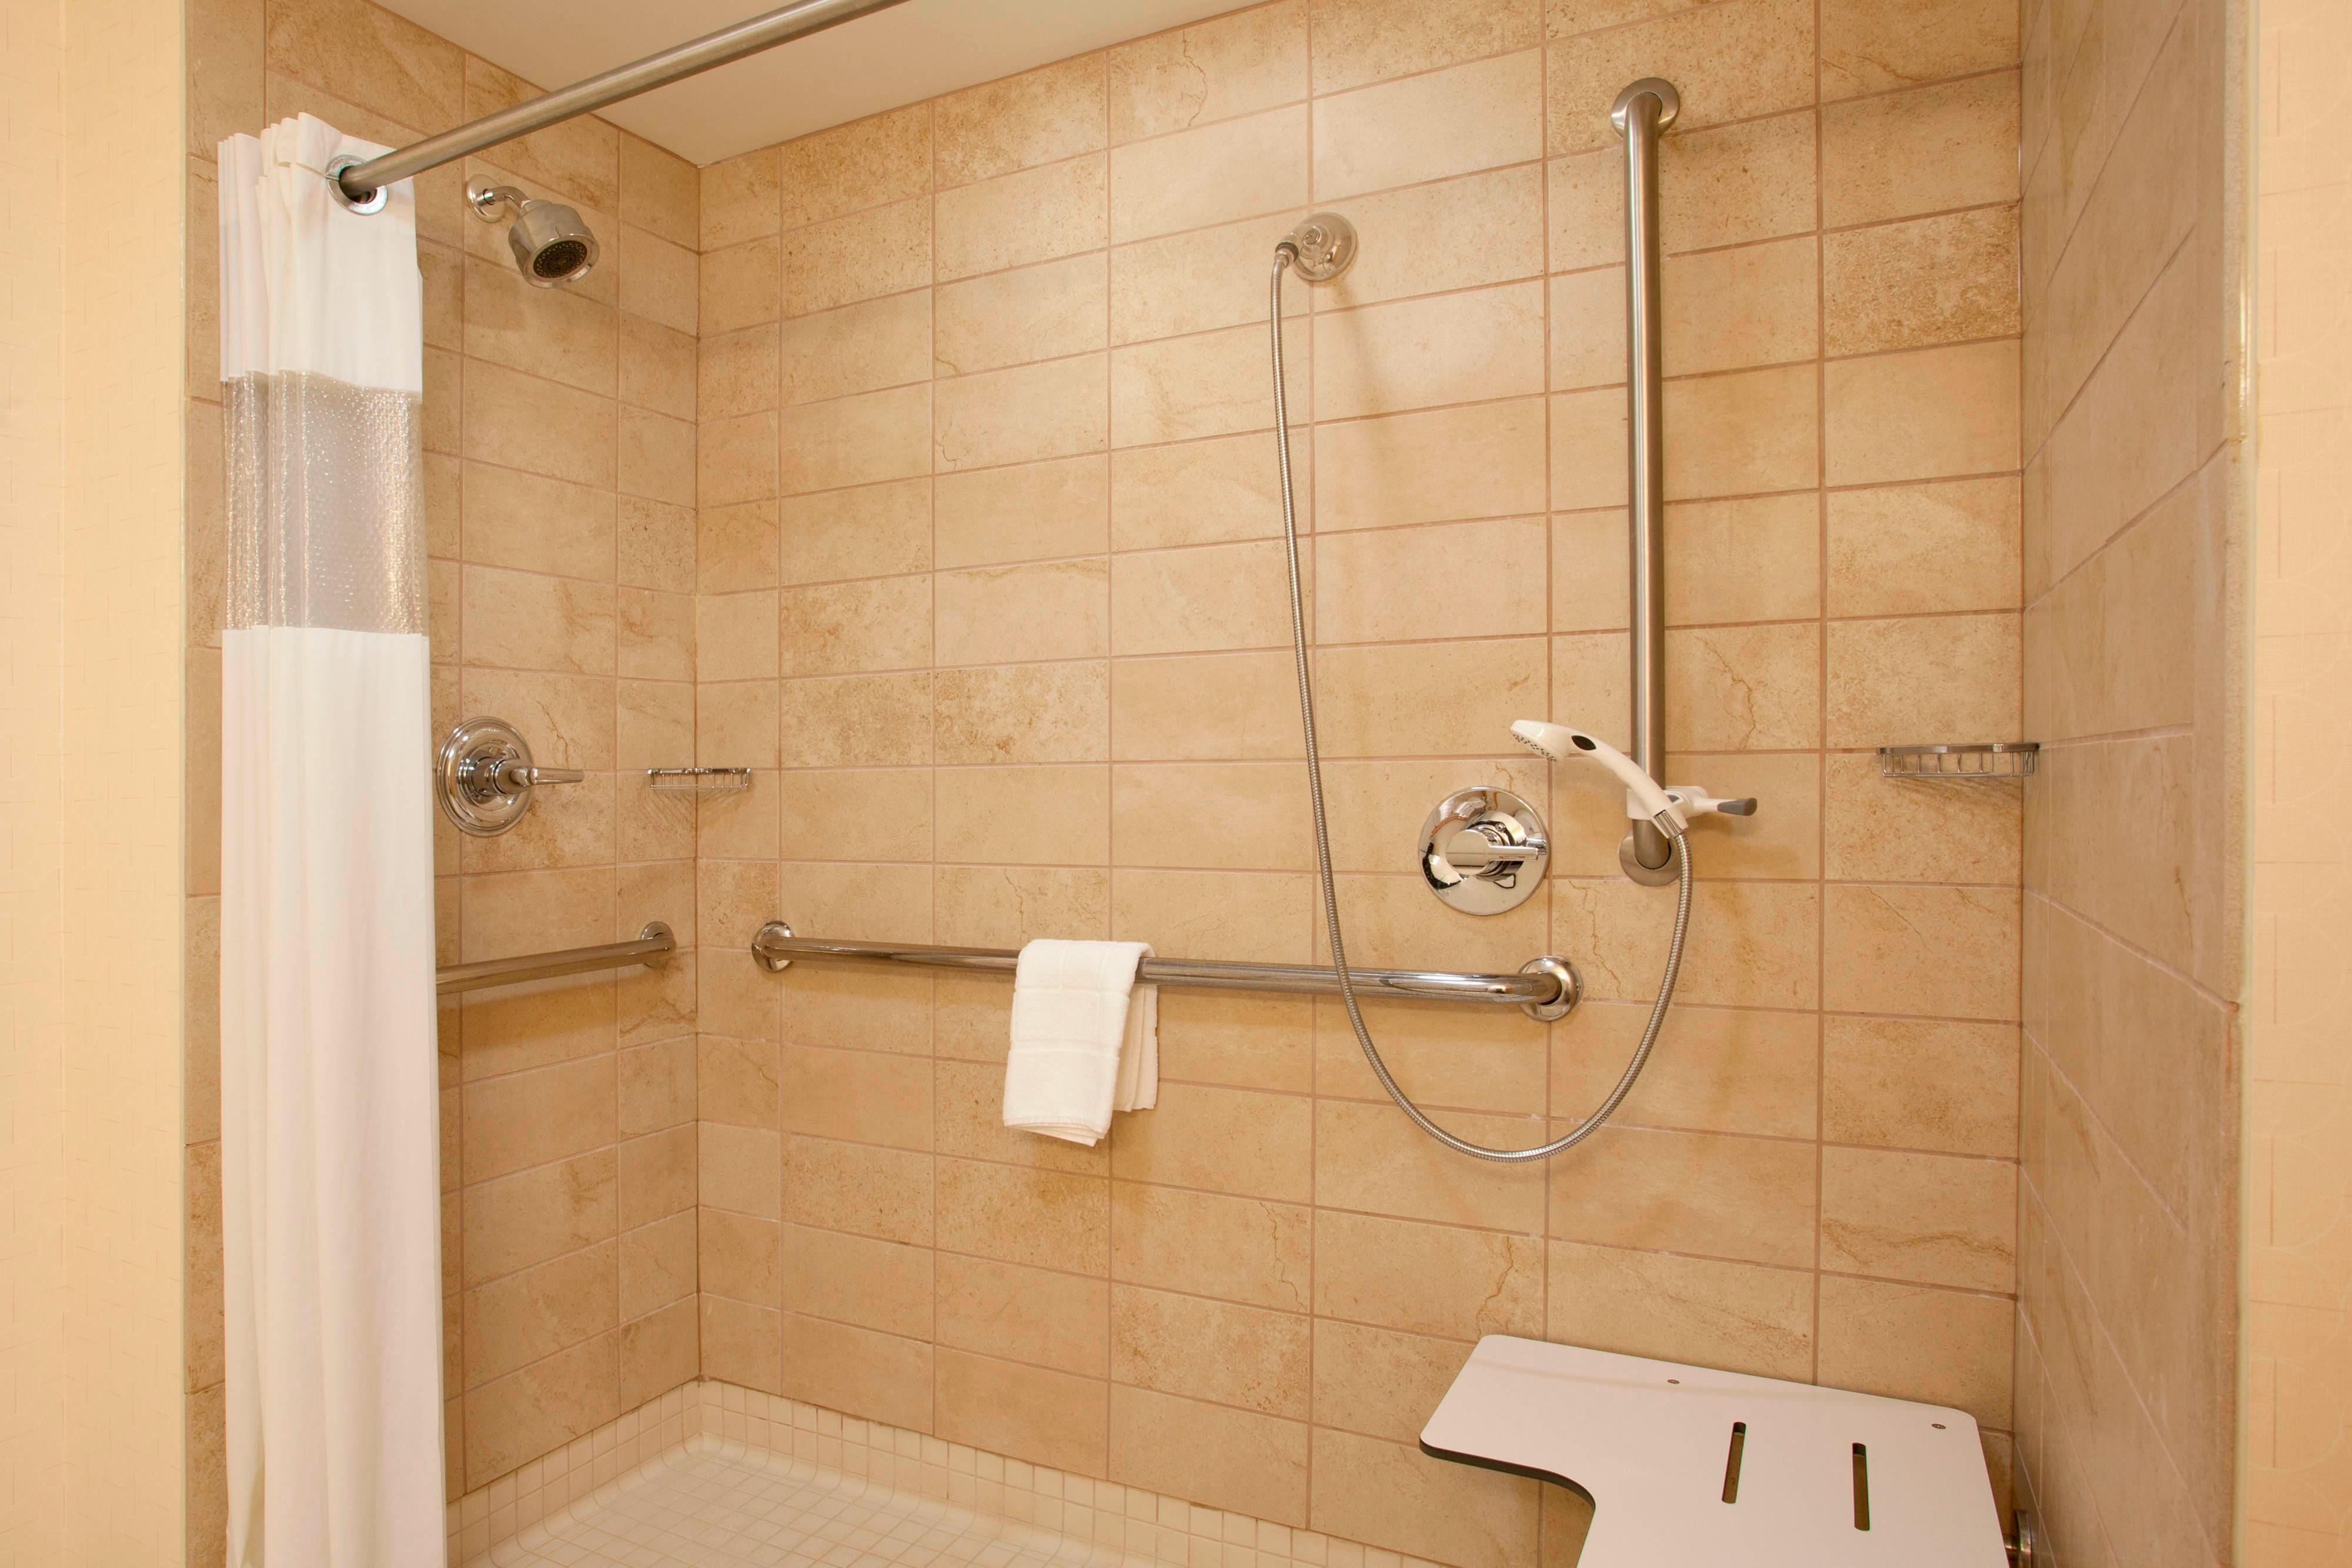 Accessible Bathroom – Roll-In Shower